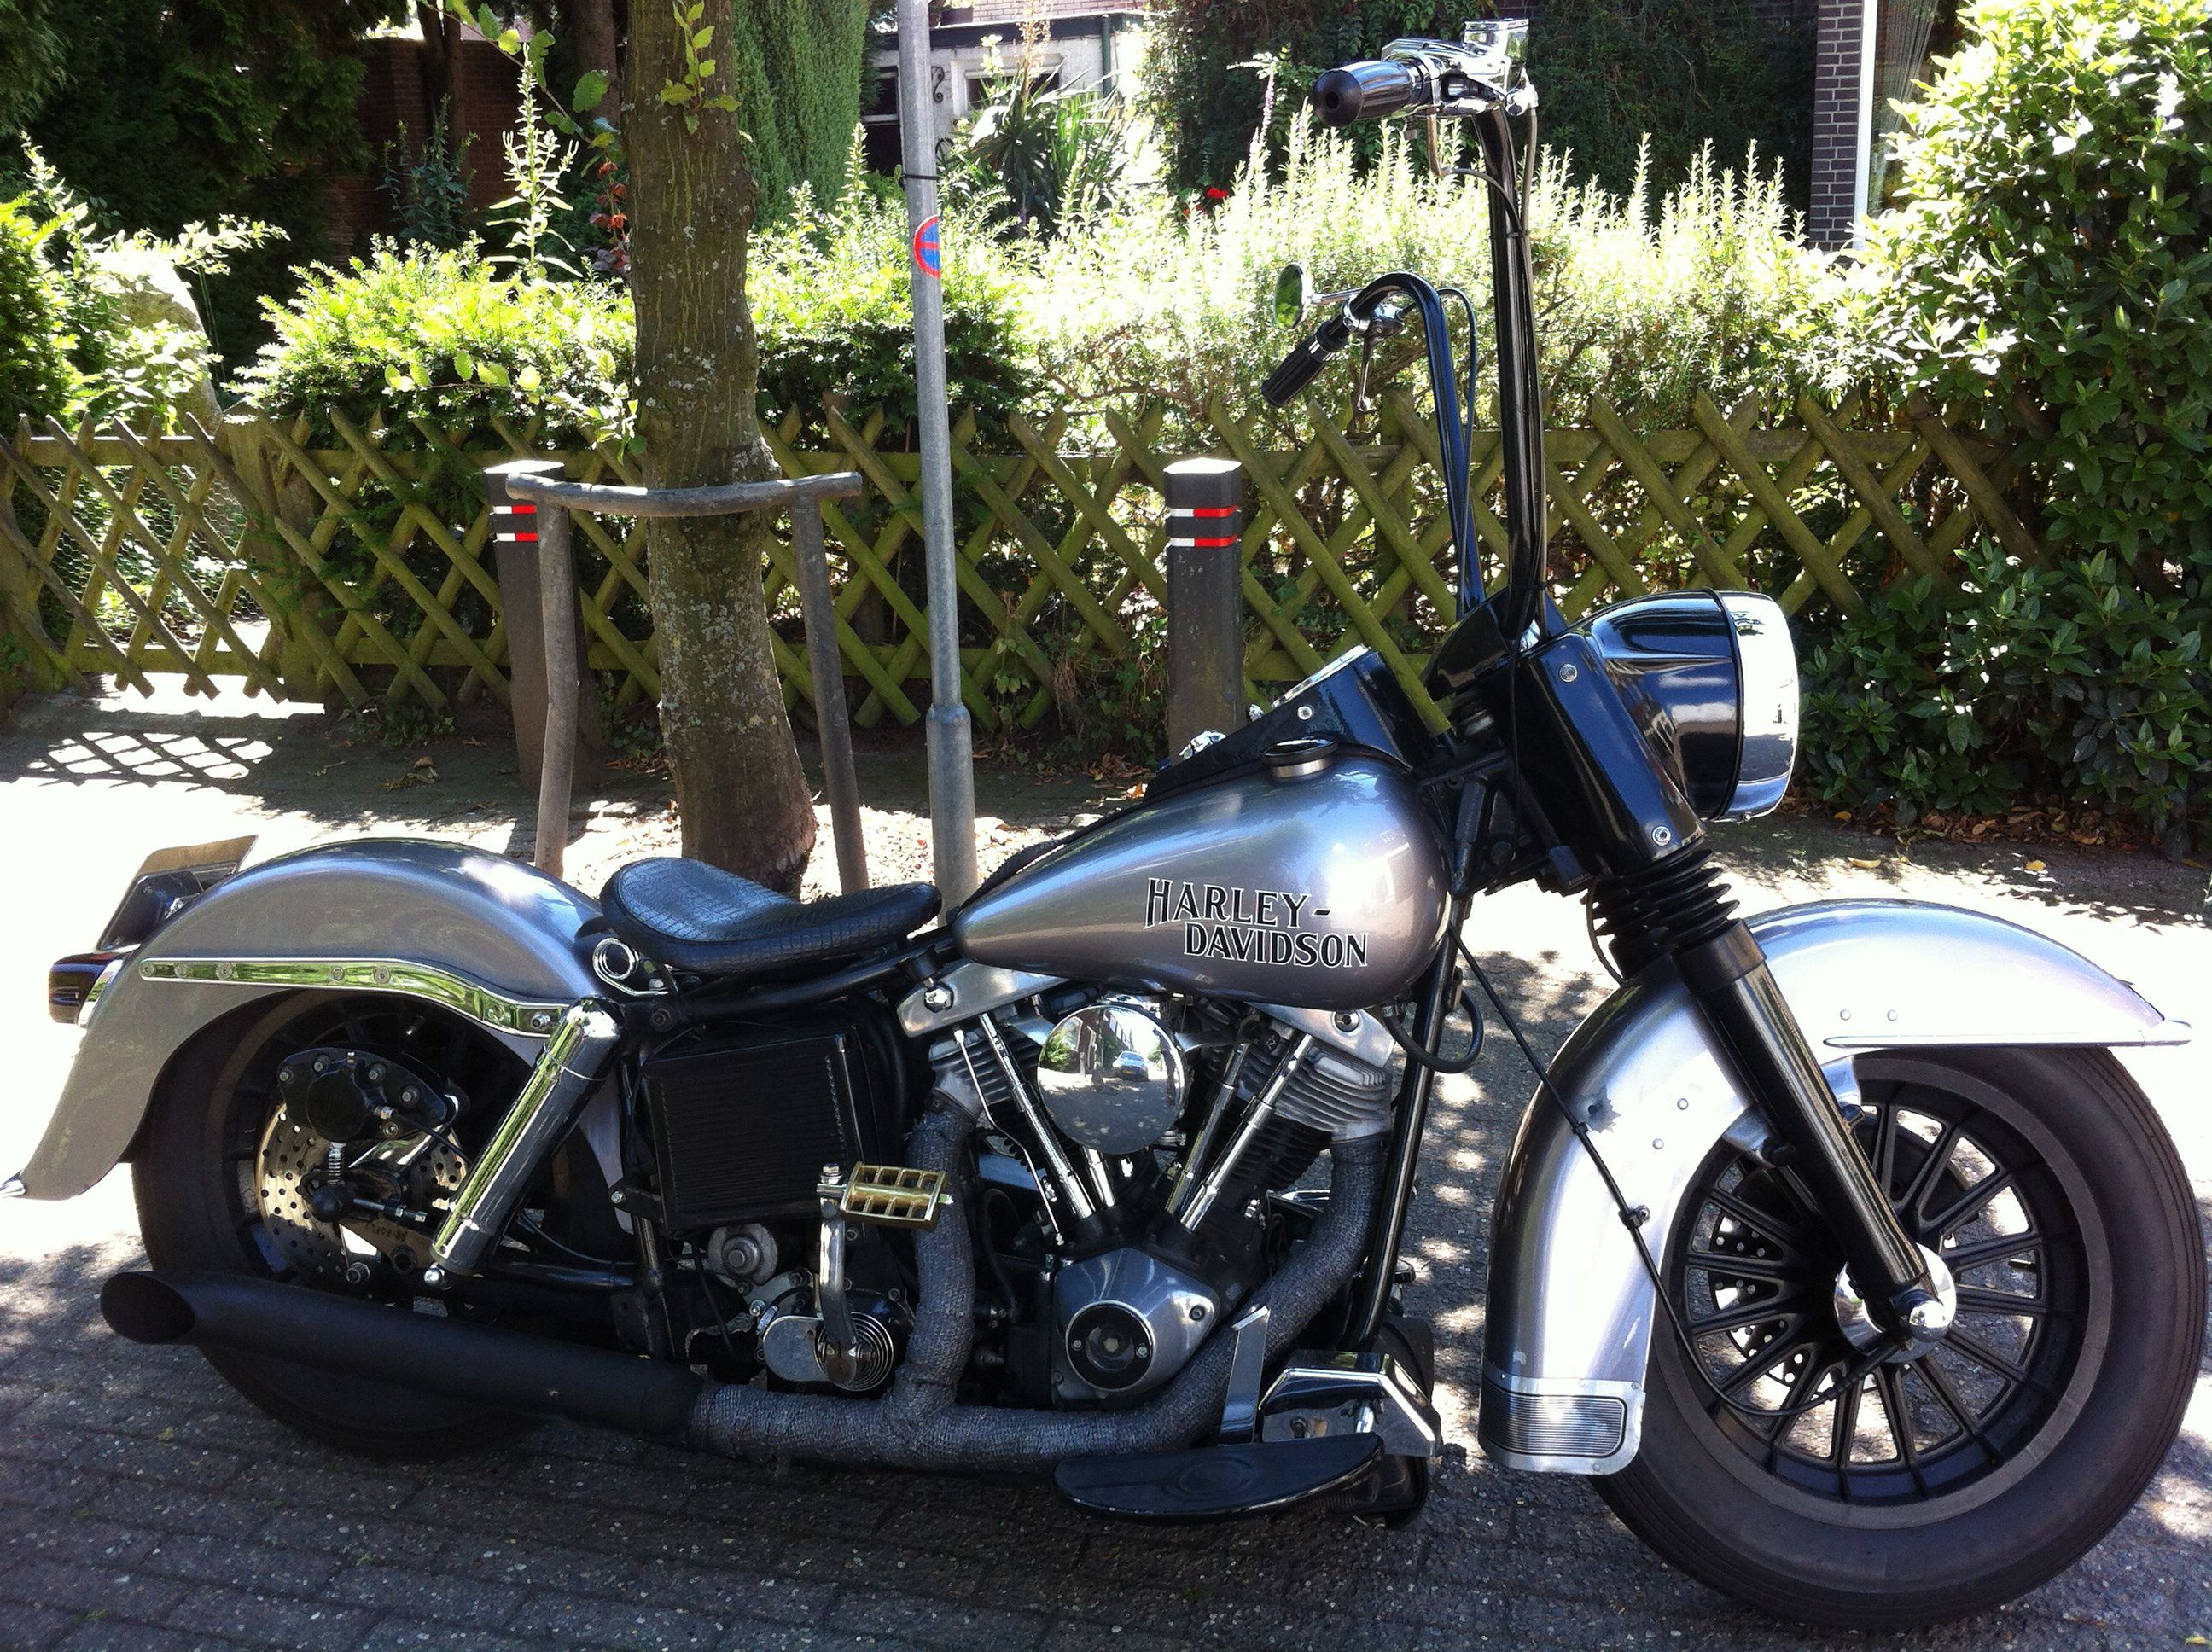 medium resolution of my electra glide flh 81 low more